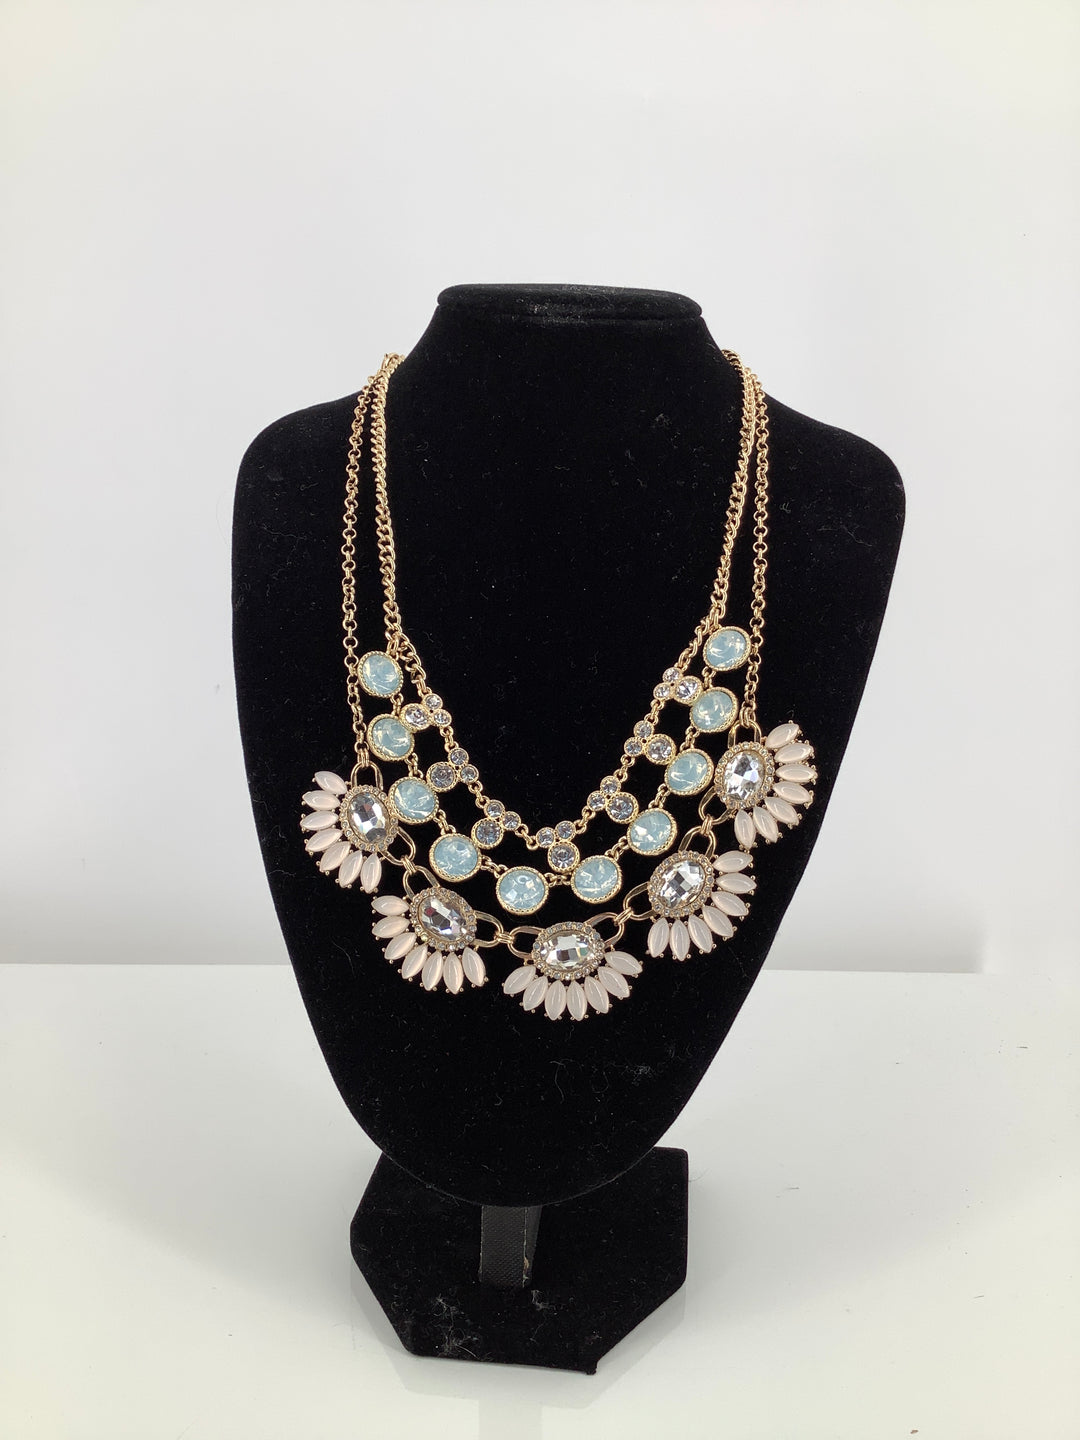 Primary Photo - BRAND: JUICY COUTURE , STYLE: NECKLACE SET , COLOR: STONE , SIZE:, SKU: 105-3221-12337